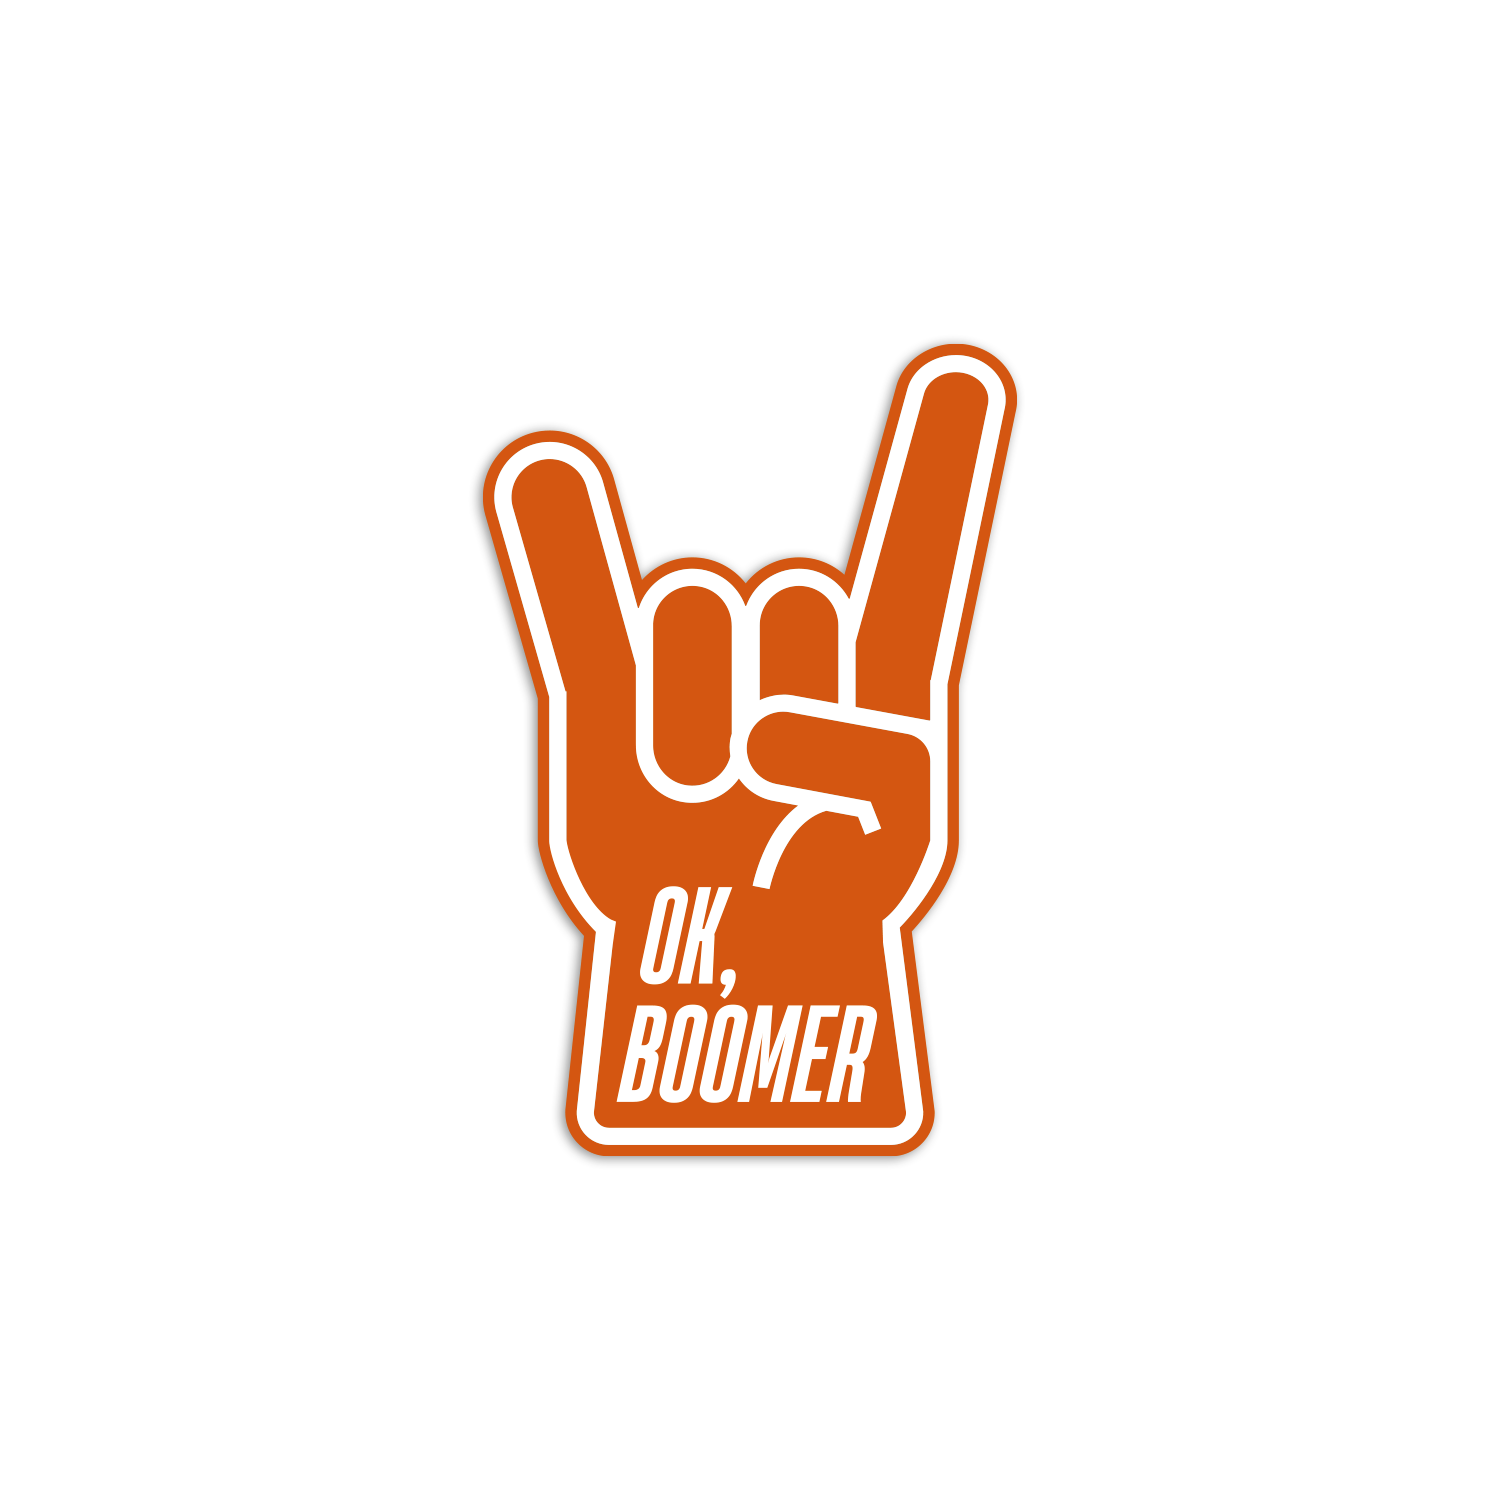 Image of OK, Boomer Sticker